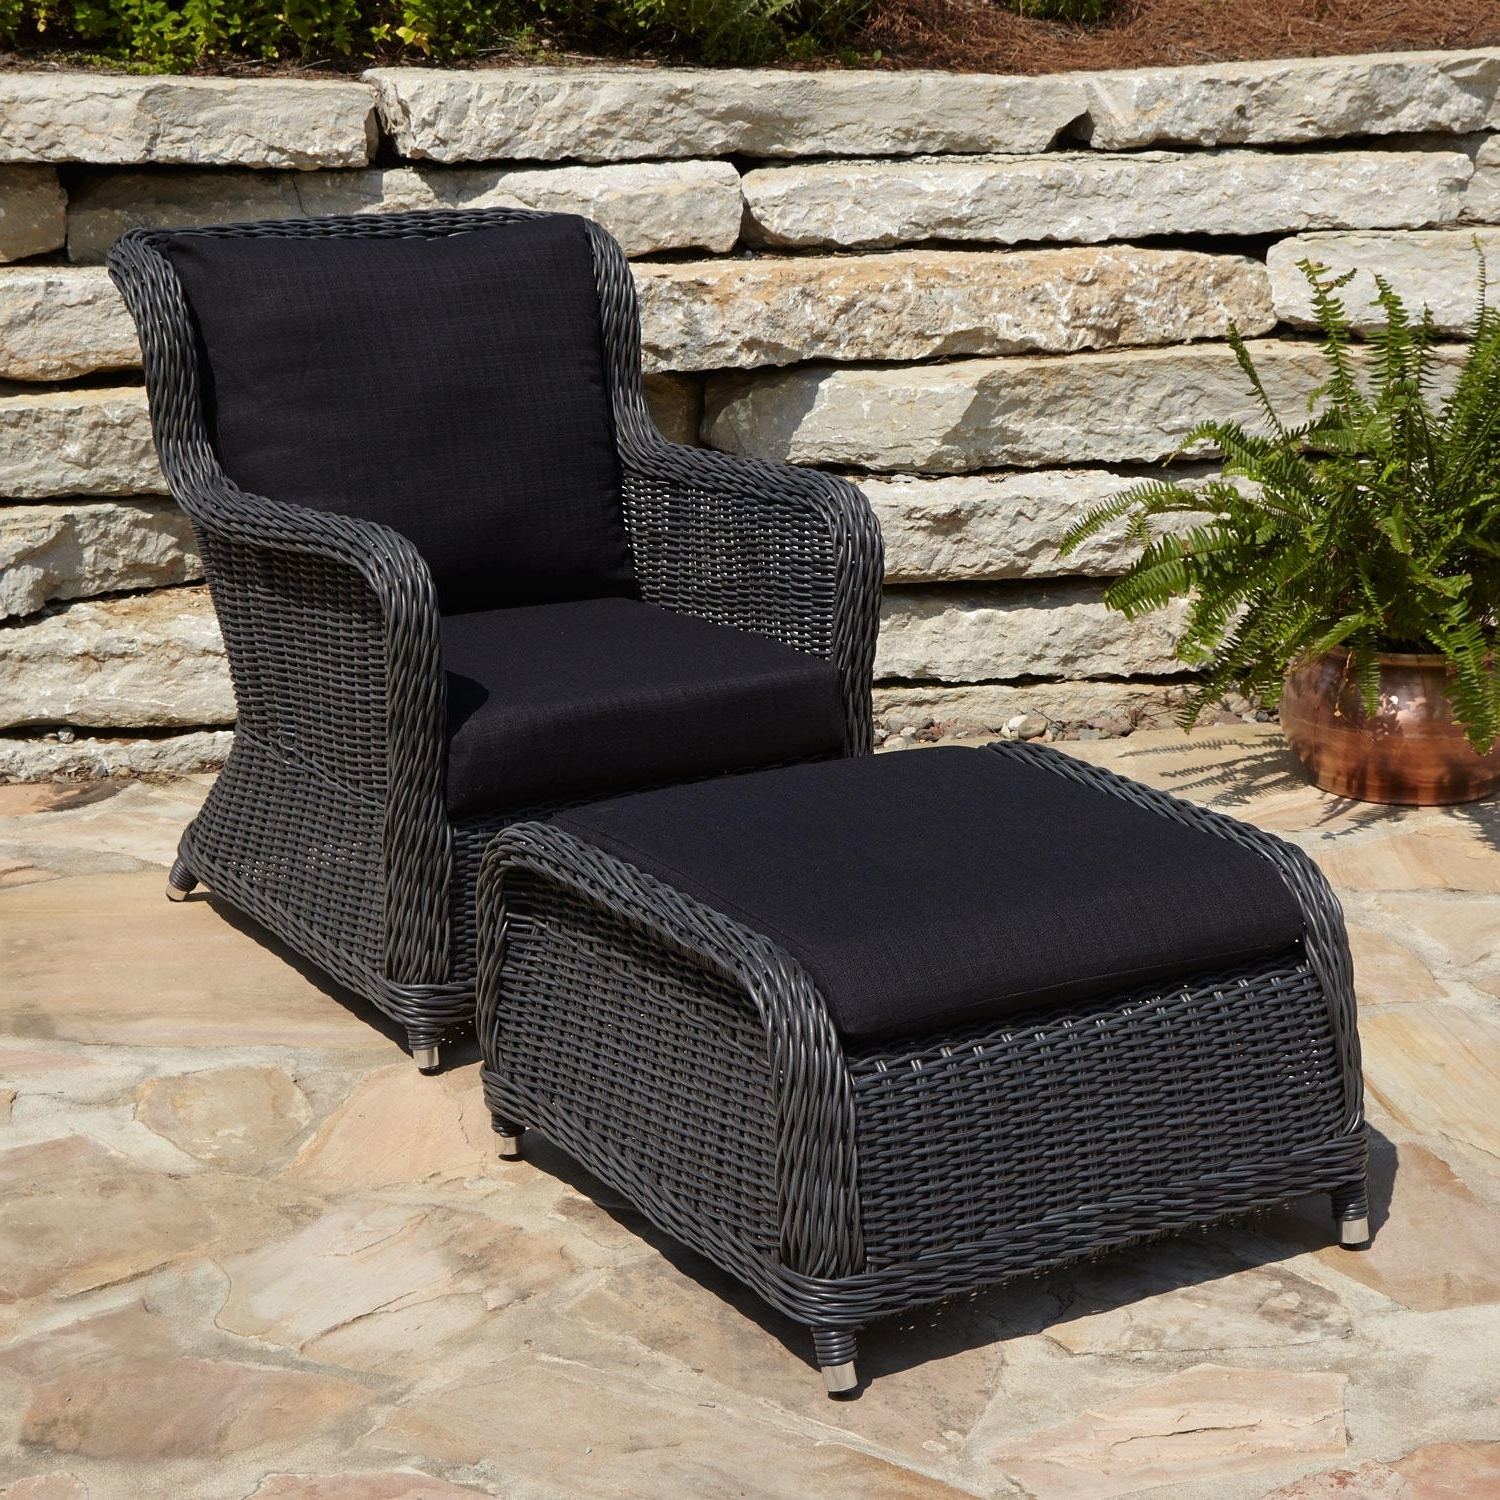 Most Recently Released Chaise Lounge Chairs At Big Lots With Outdoor : Outdoor Lounger Sofa Lowes Lounge Chairs Big Lots Lounge (View 8 of 15)